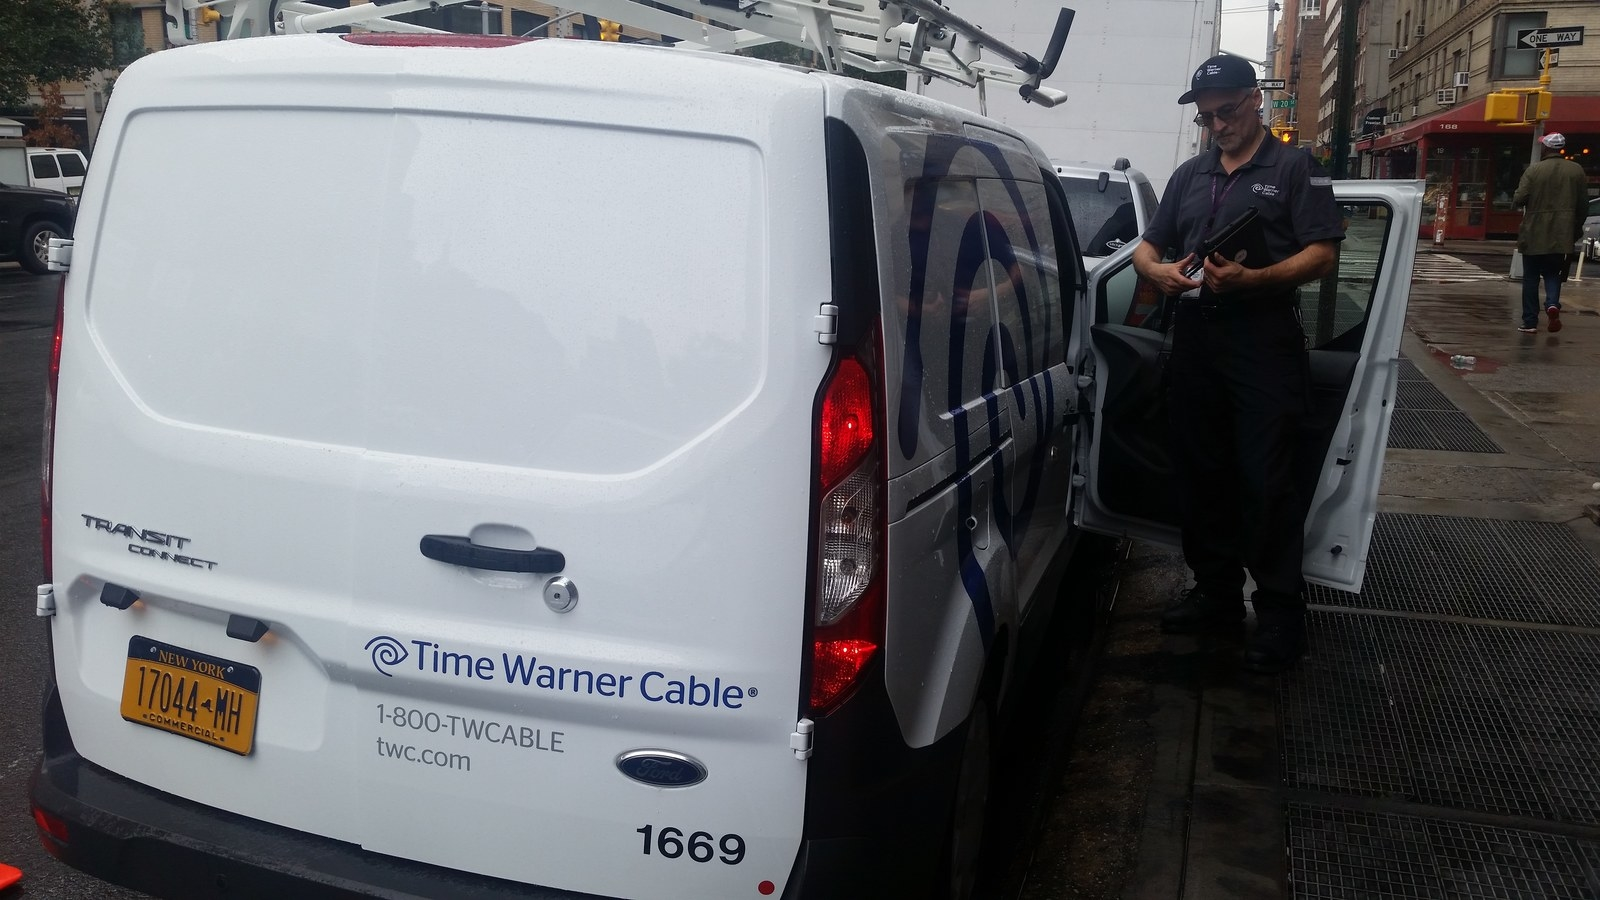 time warner allegedly charged 5 million people for